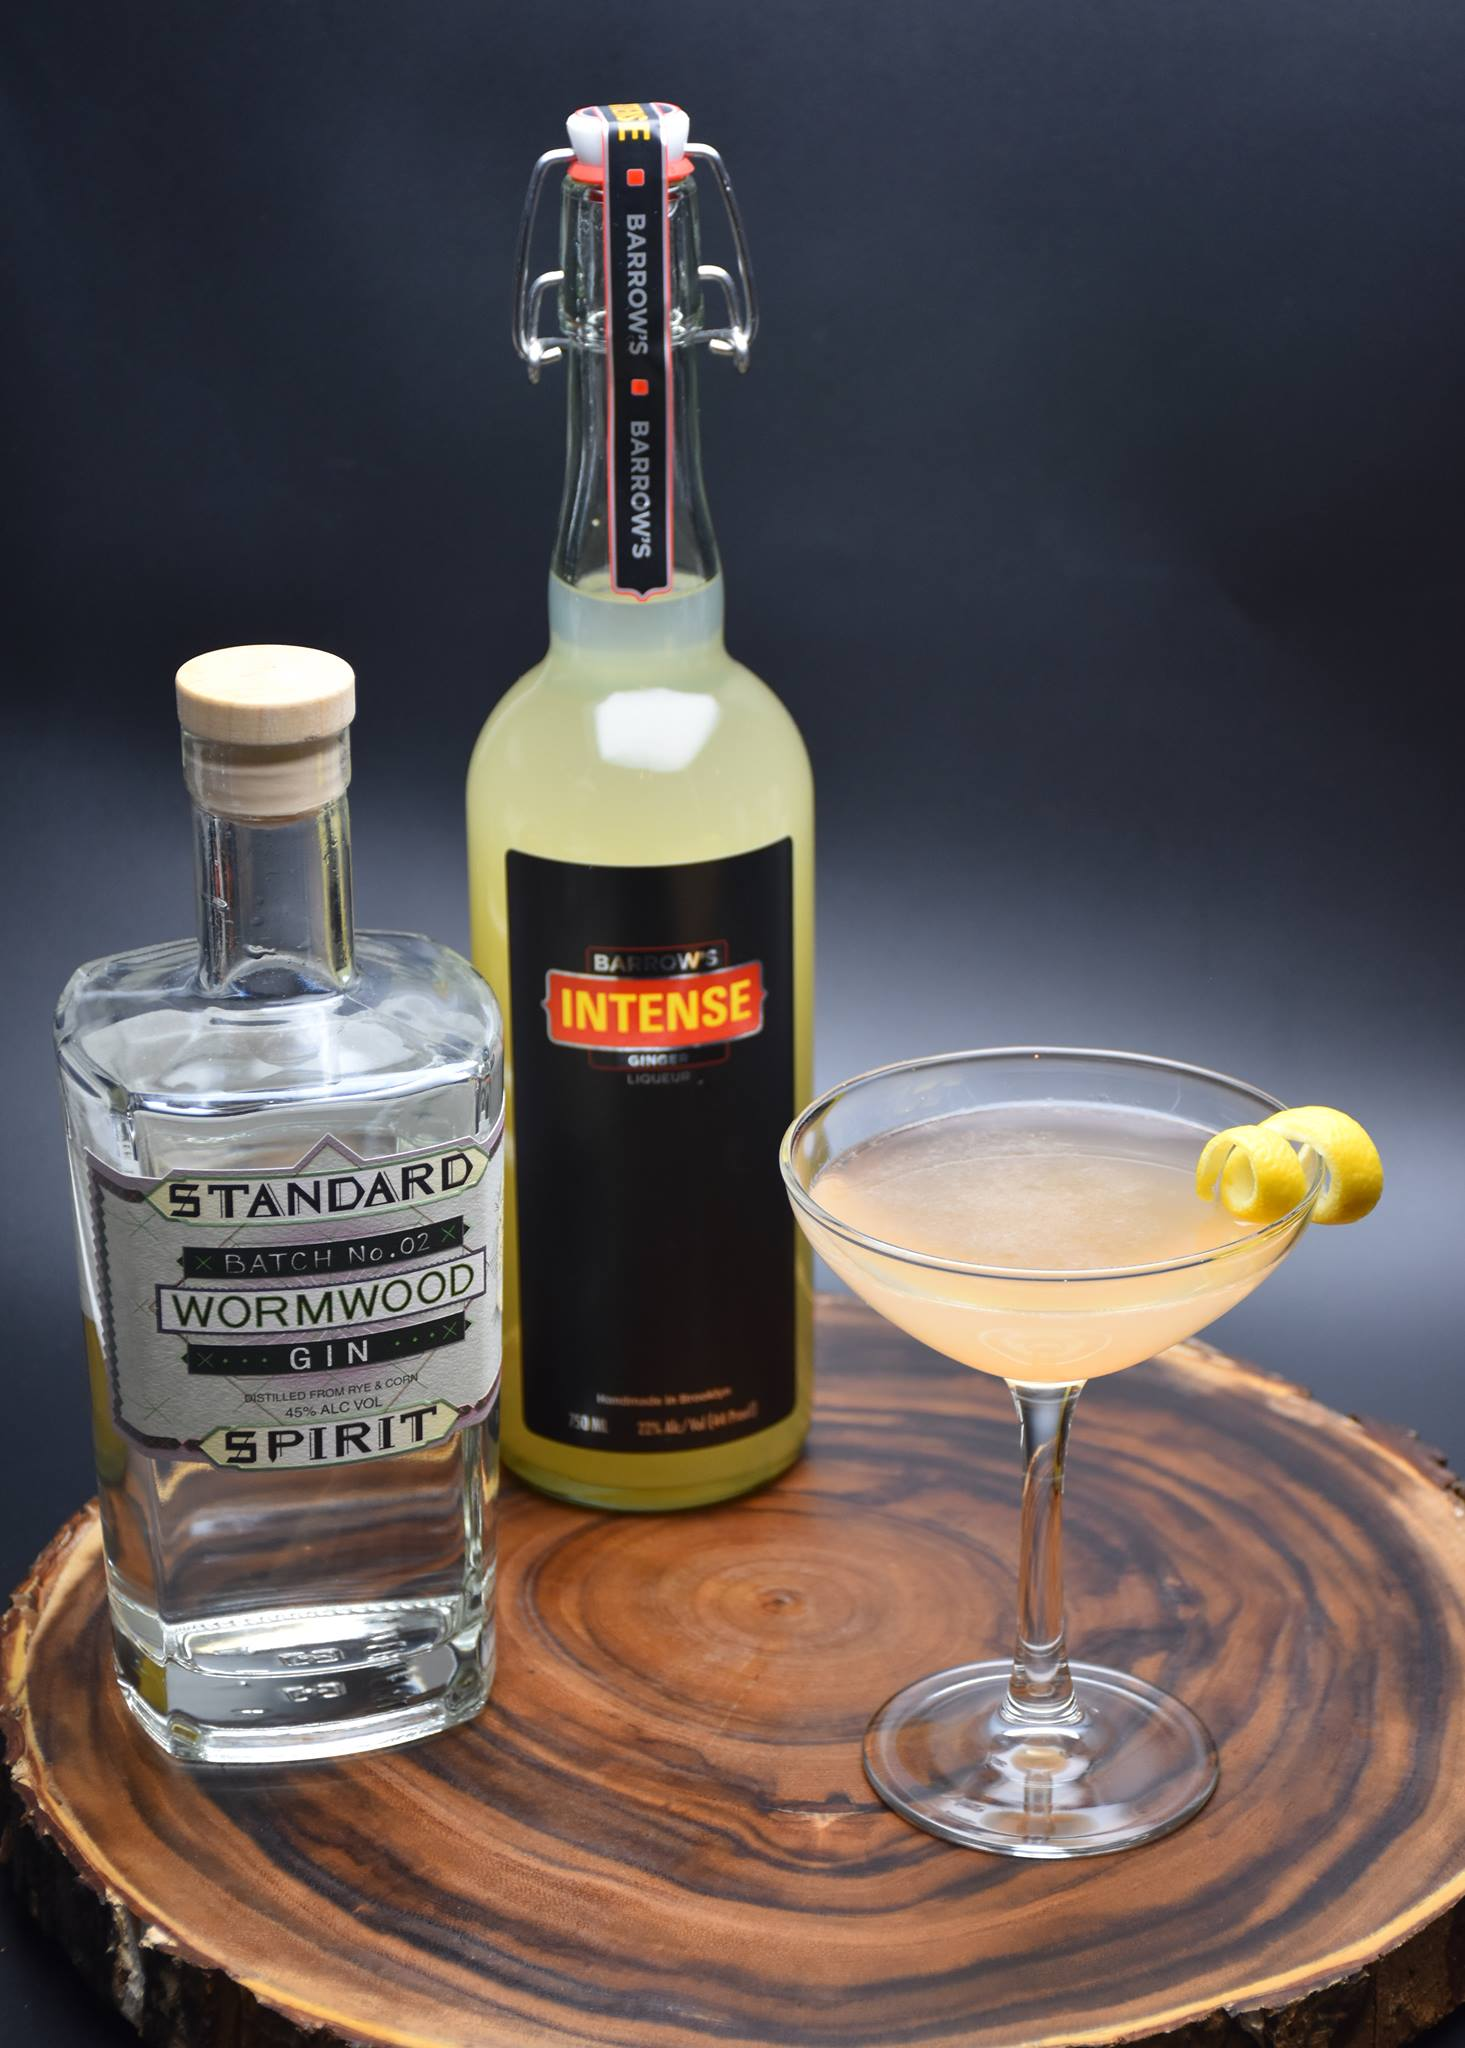 The Correct Cocktail